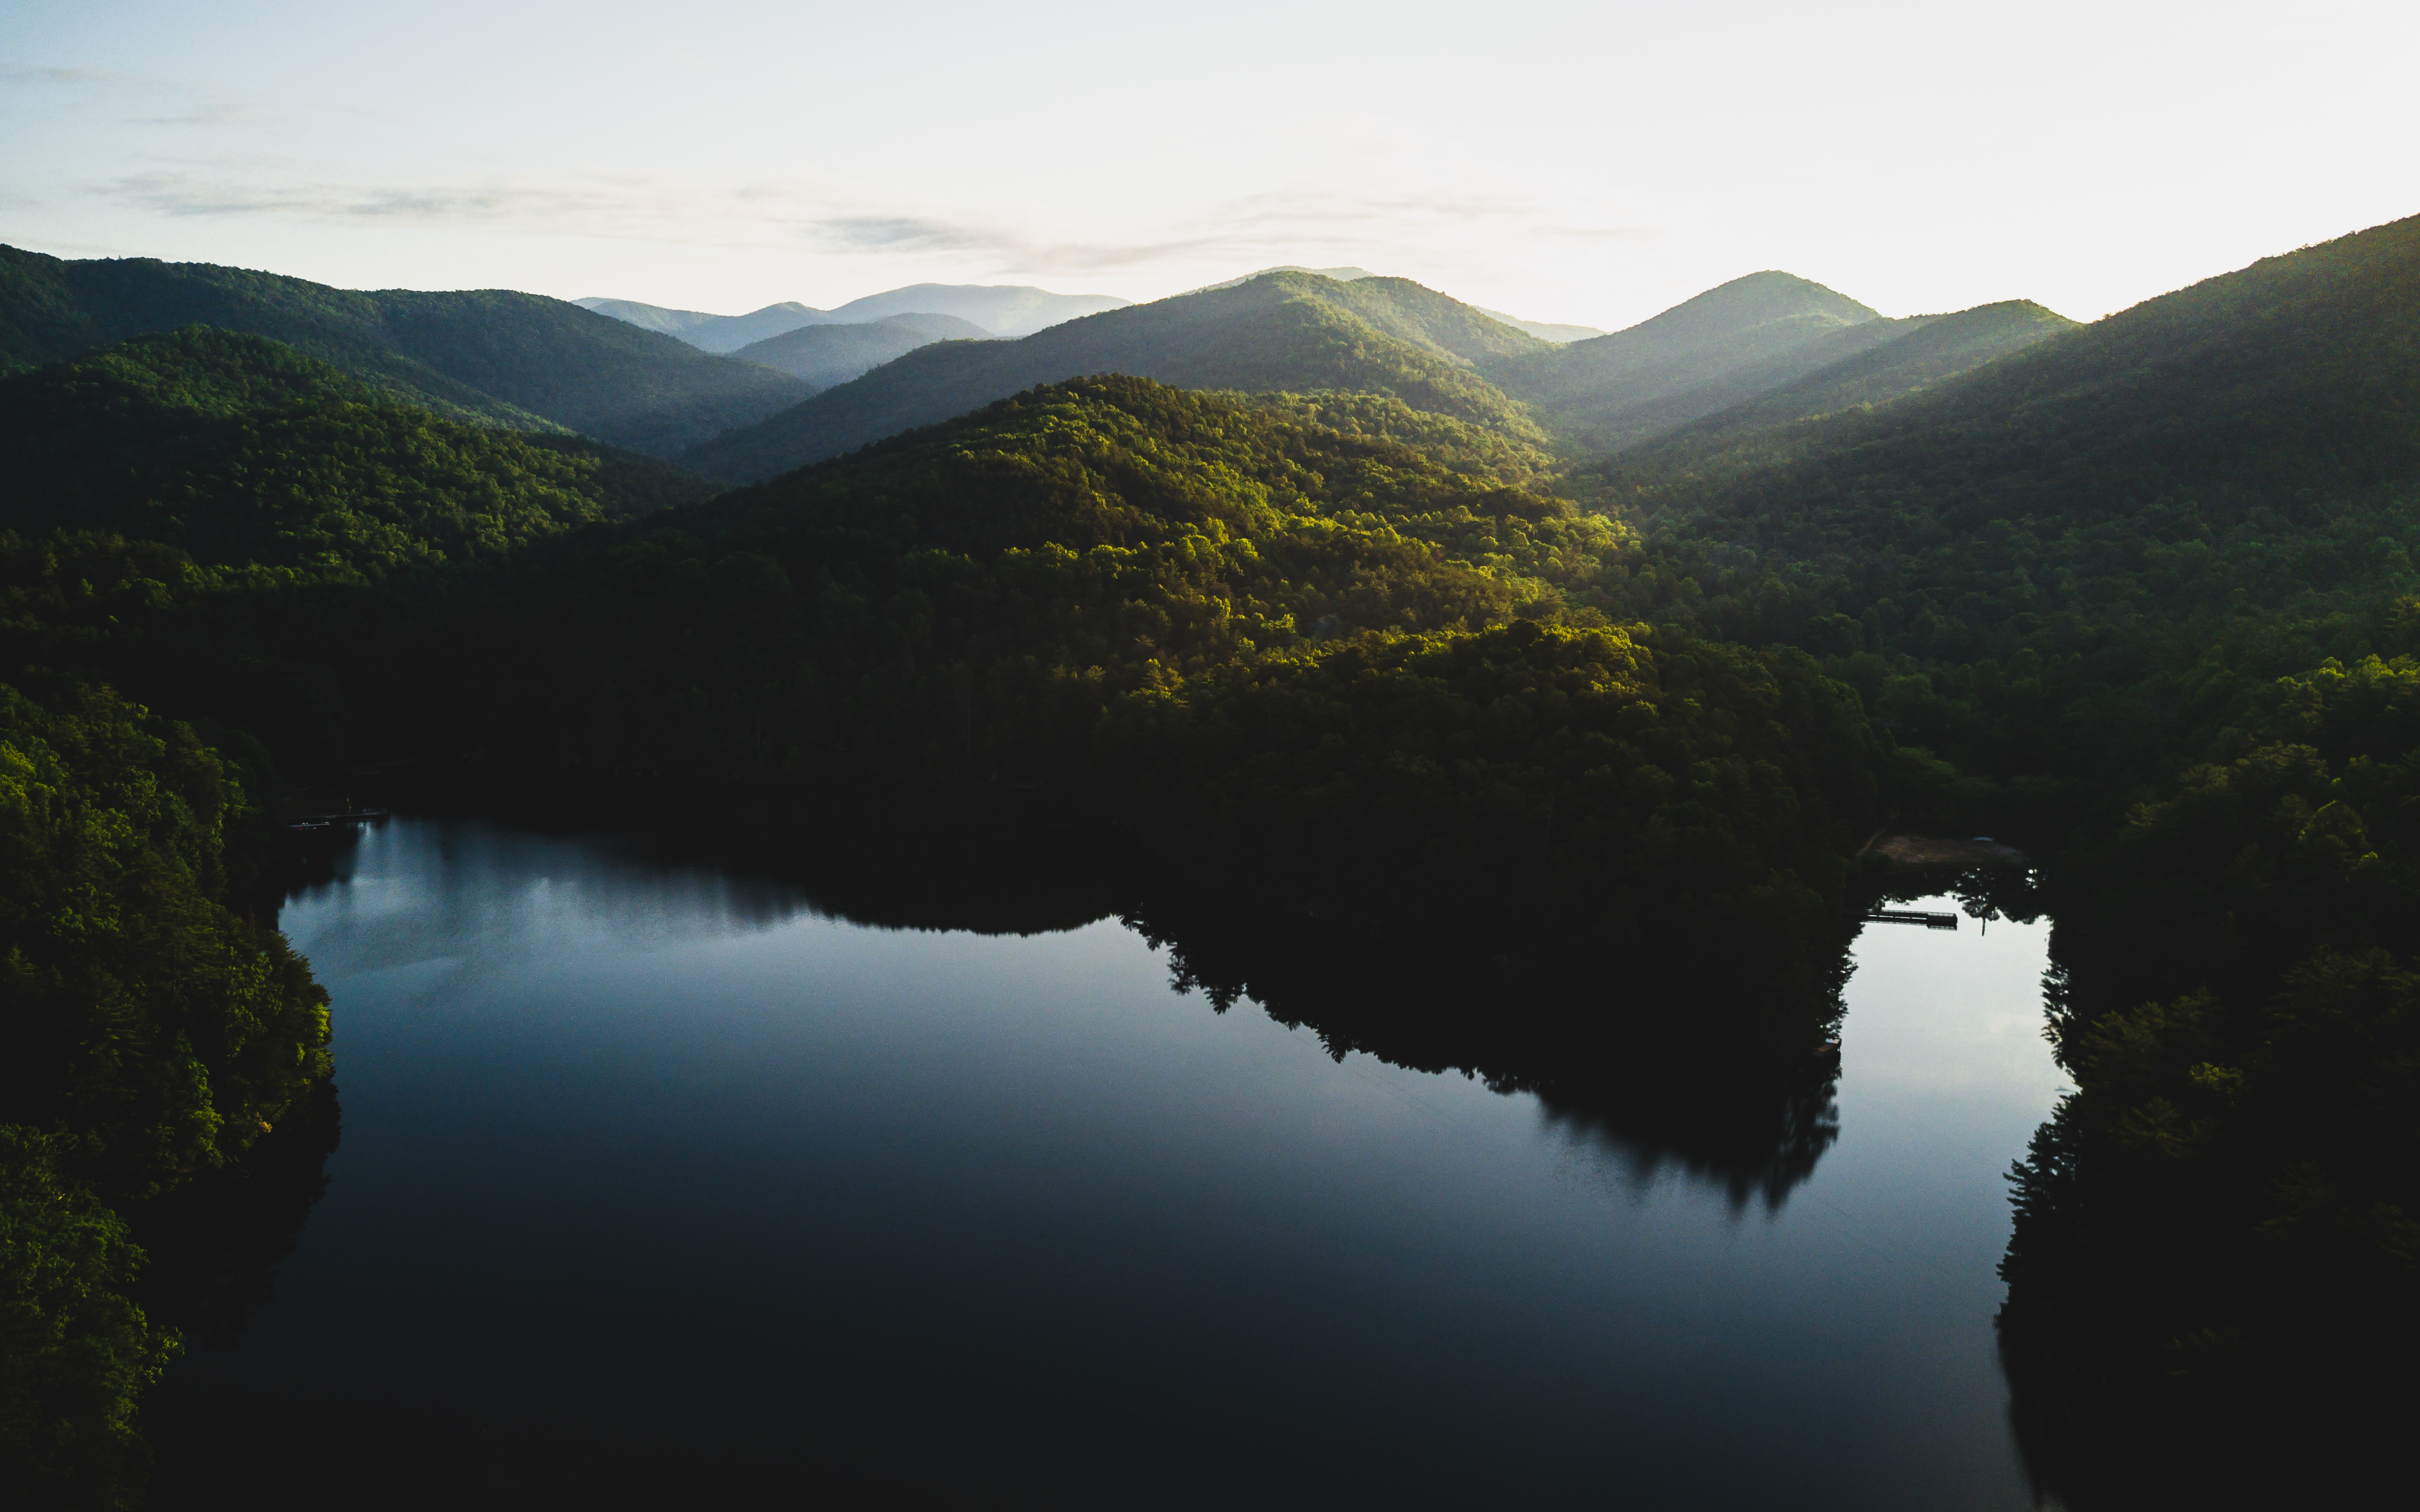 mountains surrounded by body of water during daytime